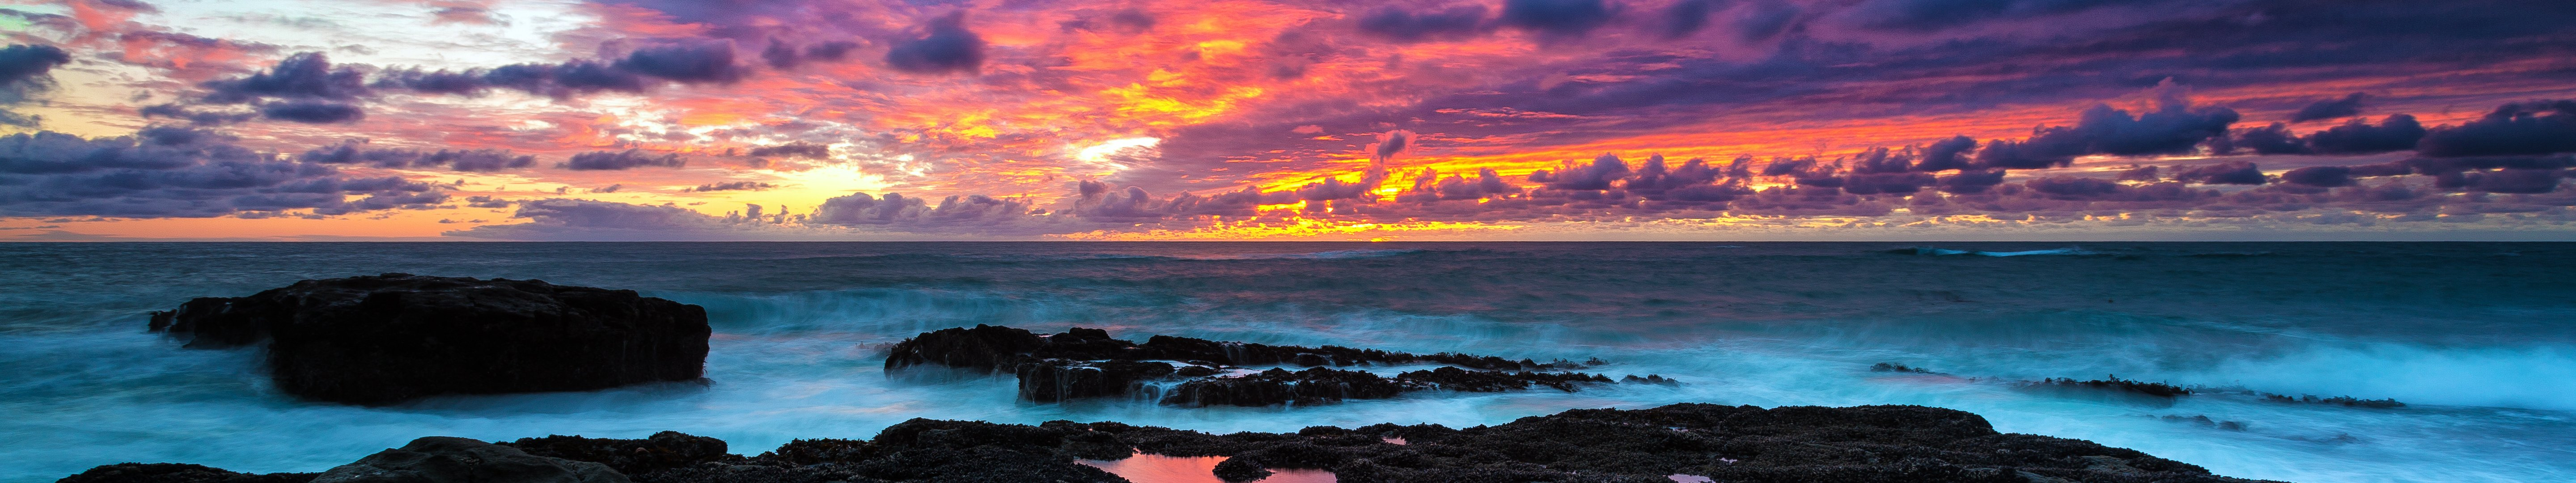 Ocean Sunset Hd Wallpaper Background Image 5760x1080 Id 718584 Wallpaper Abyss